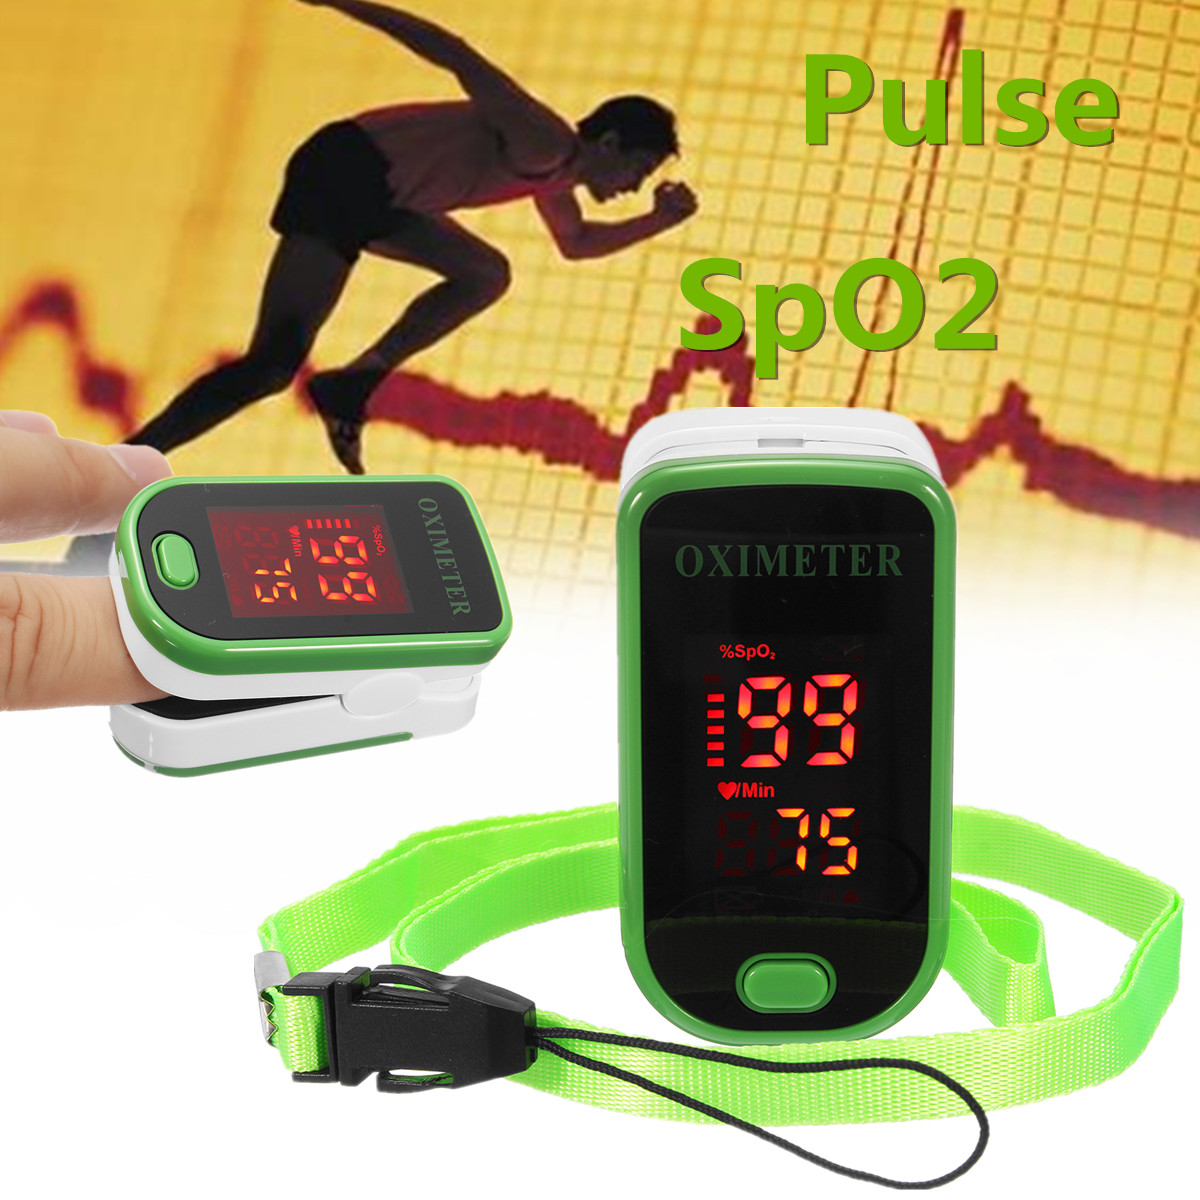 LED Display Healthcare Fingertip Pulse Oximeter Medical